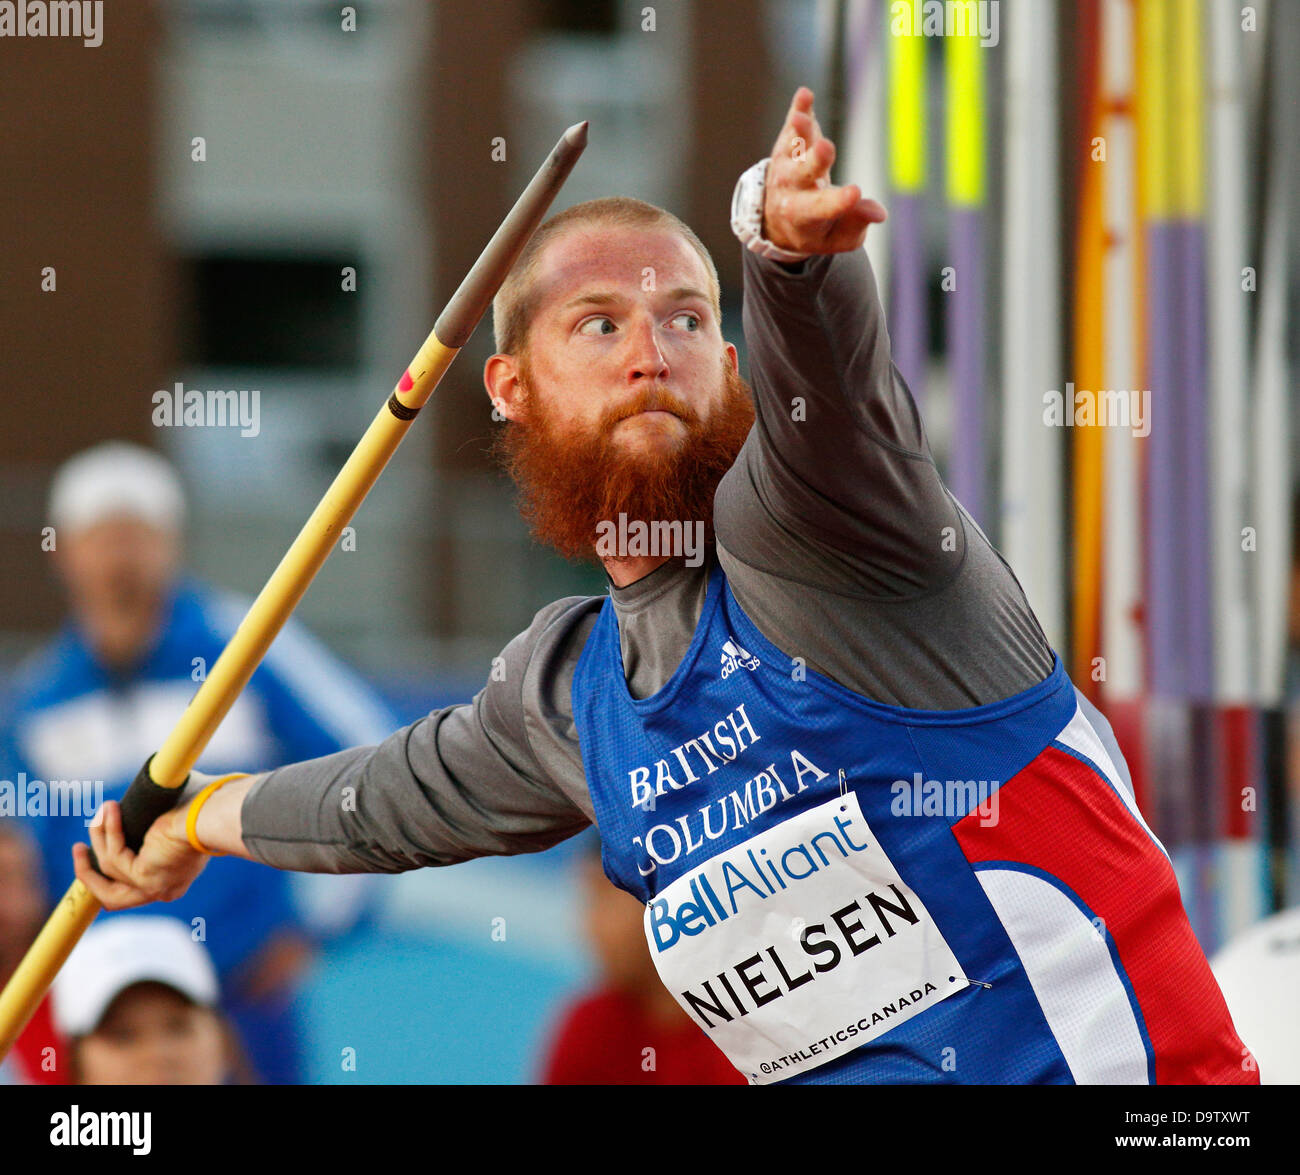 Javelin thrower Kyle Nielsen shows his winning form at the Canadian Track & Field Championships June 22, 2013, - Stock Image